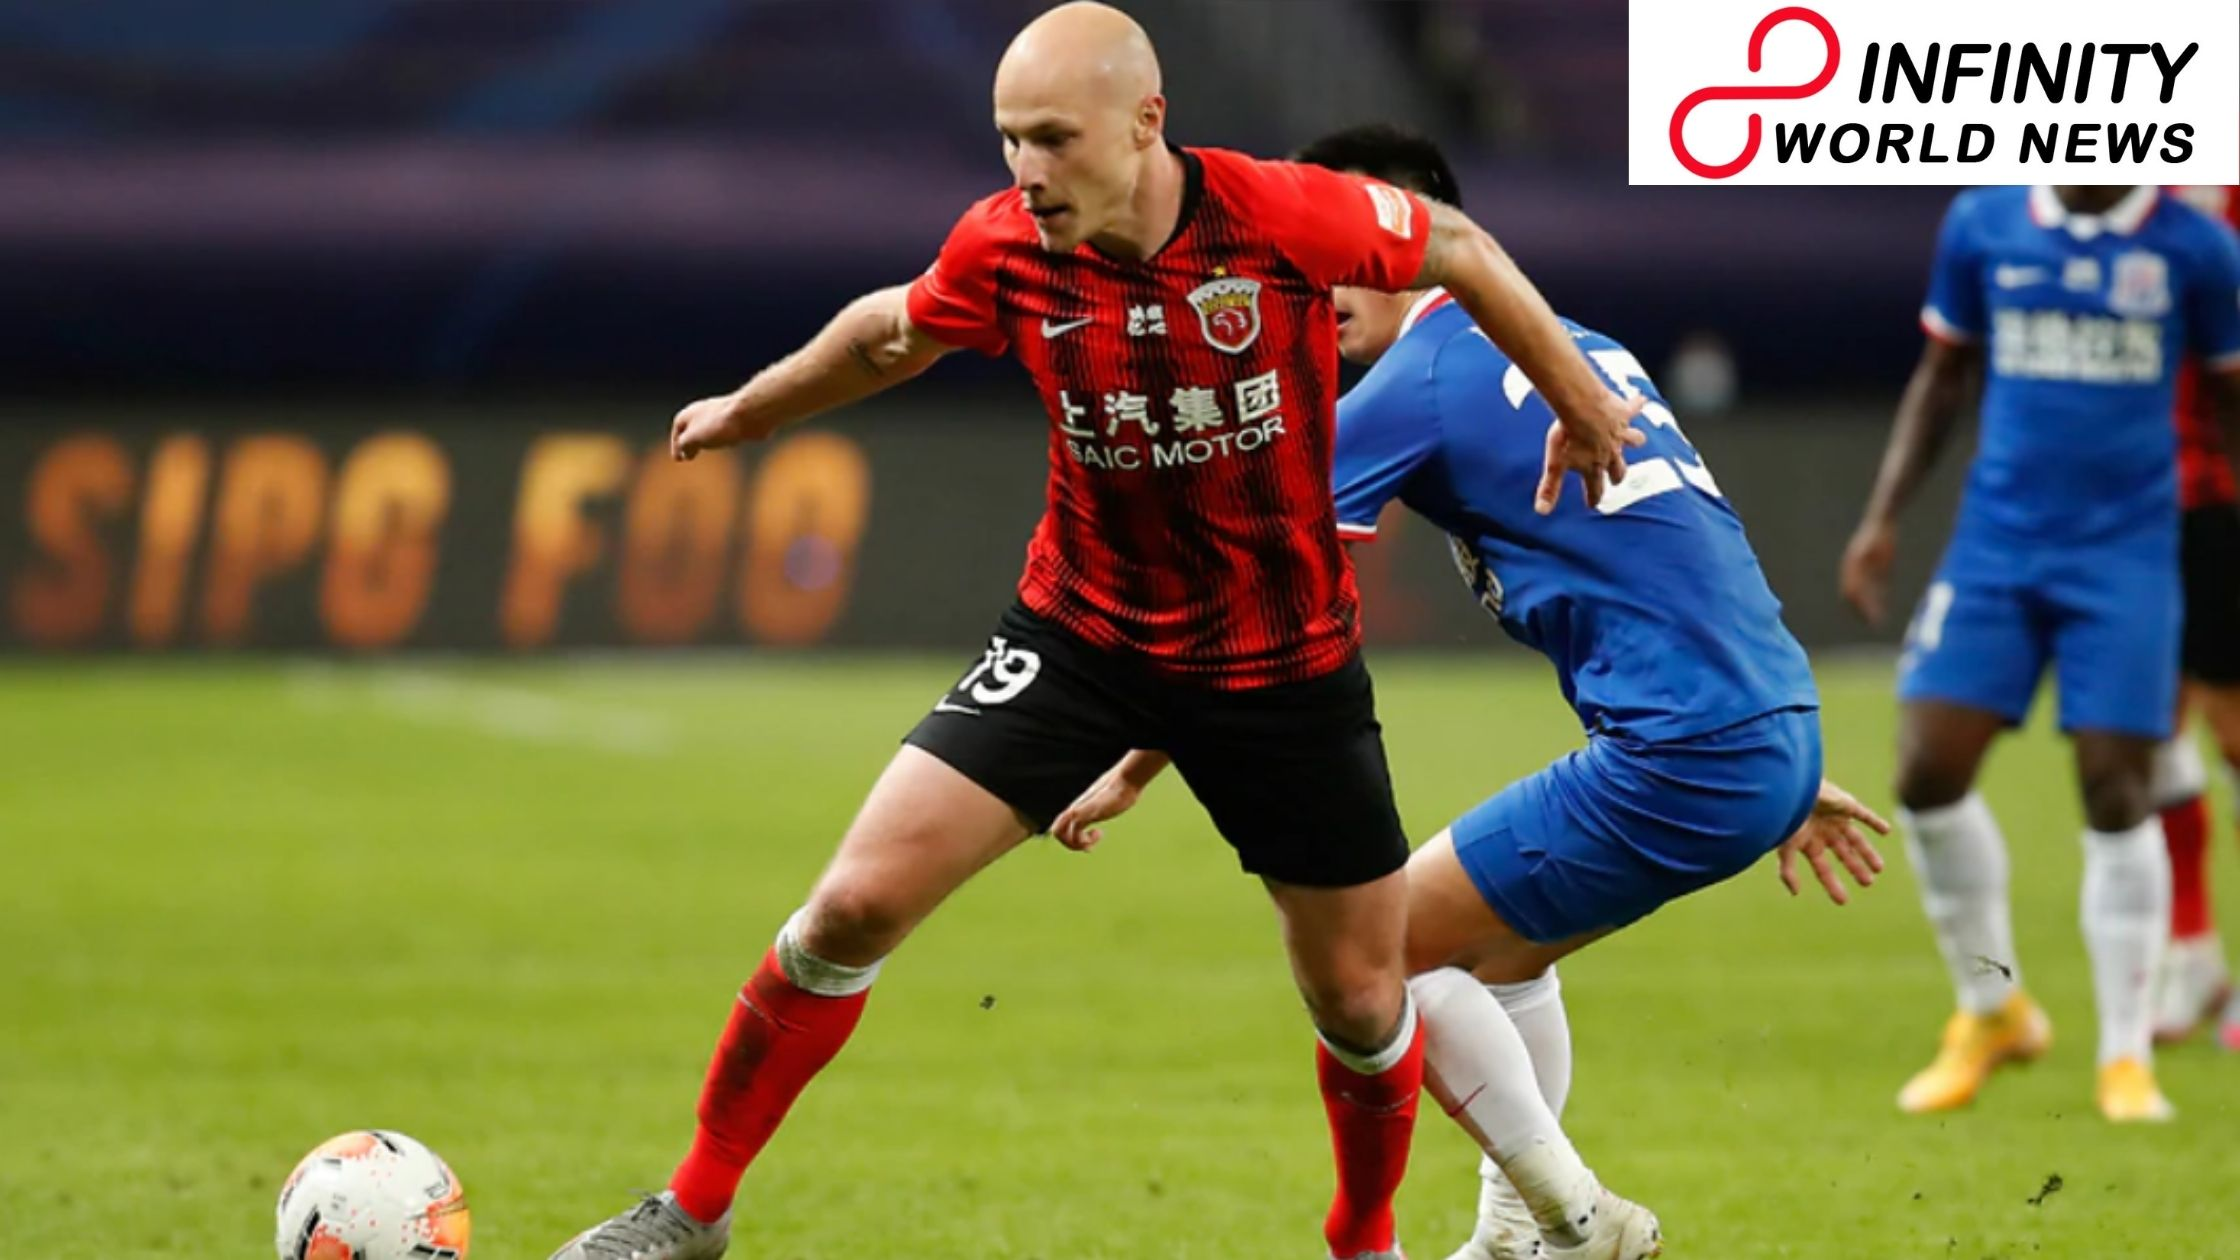 Mooy and Shanghai acquainted with rivals Sydney here and there the pitch